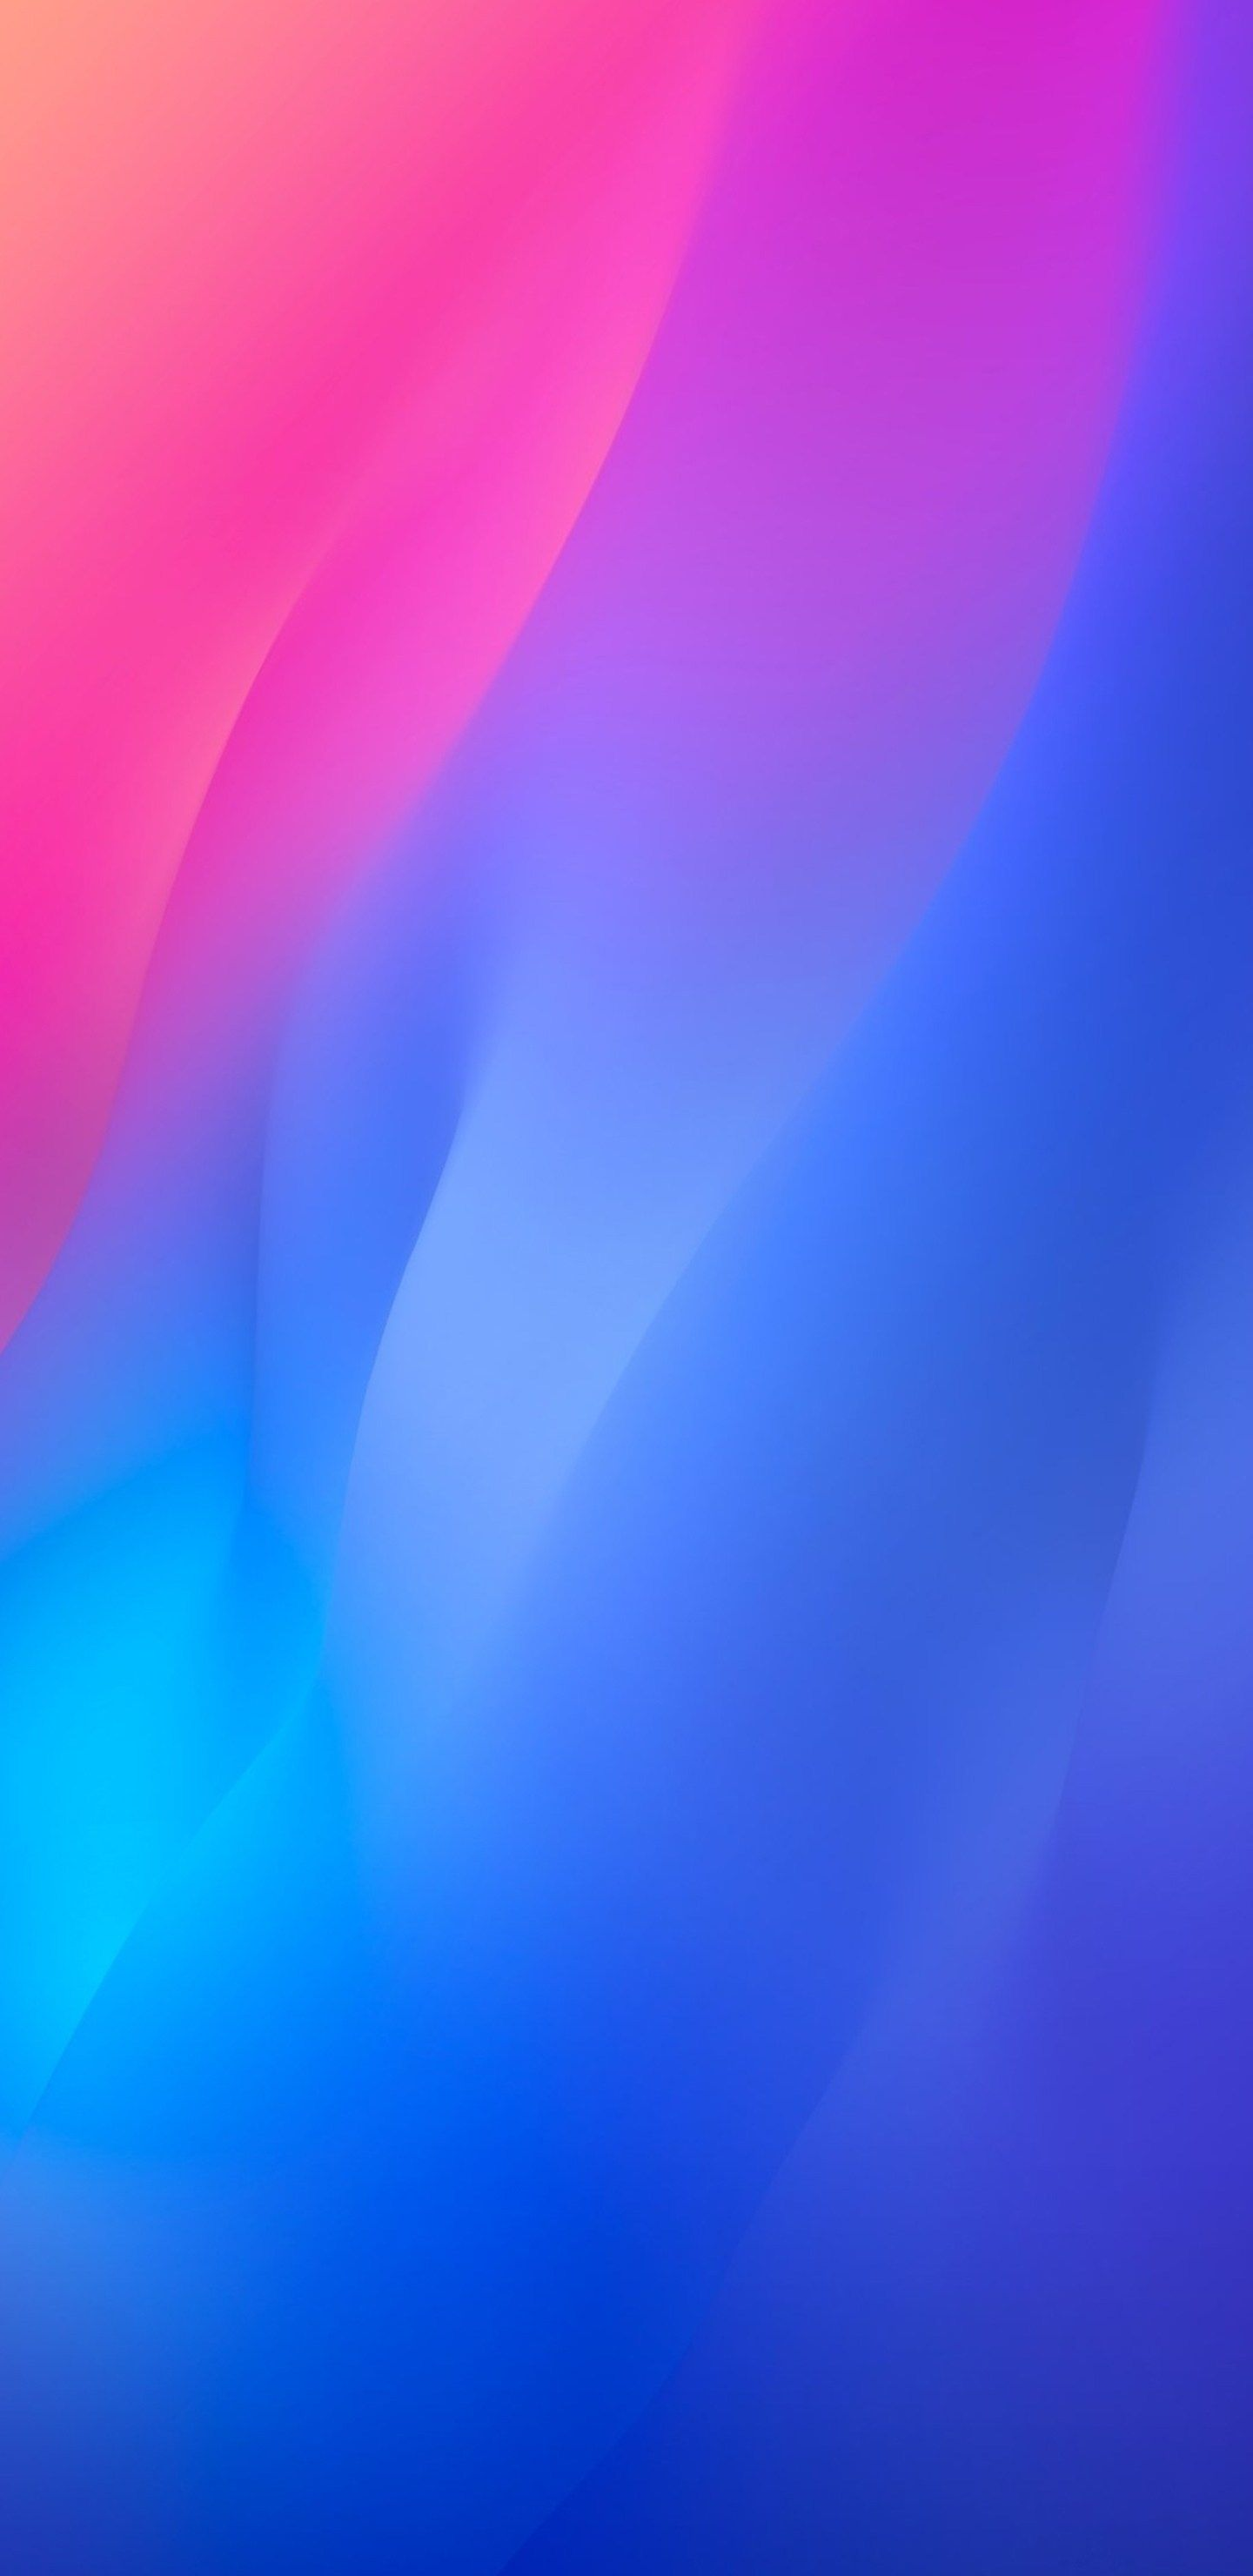 Colorful Abstract Background For Samsung Galaxy S9 And S9 In Red And Blue Hd Wallpapers Wallpapers Download High Resolution Wallpapers In 2020 Galaxy Phone Wallpaper Background Hd Wallpaper Samsung Wallpaper